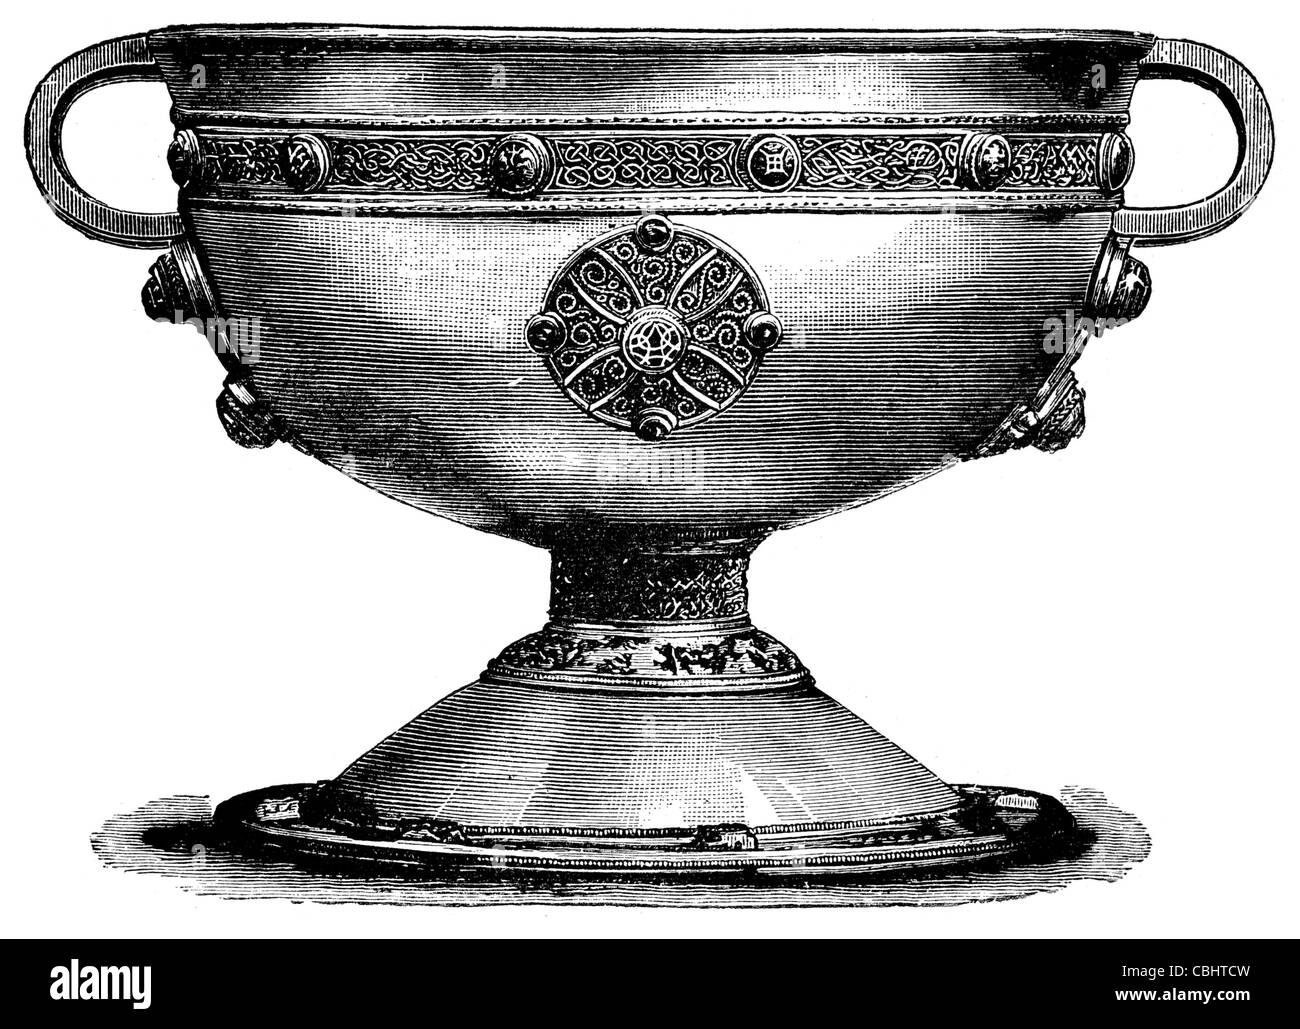 Ardagh Hoard Chalice hoard metalwork National Museum Ireland Dublin Insular art silver cup decorated gold gilt bronze - Stock Image